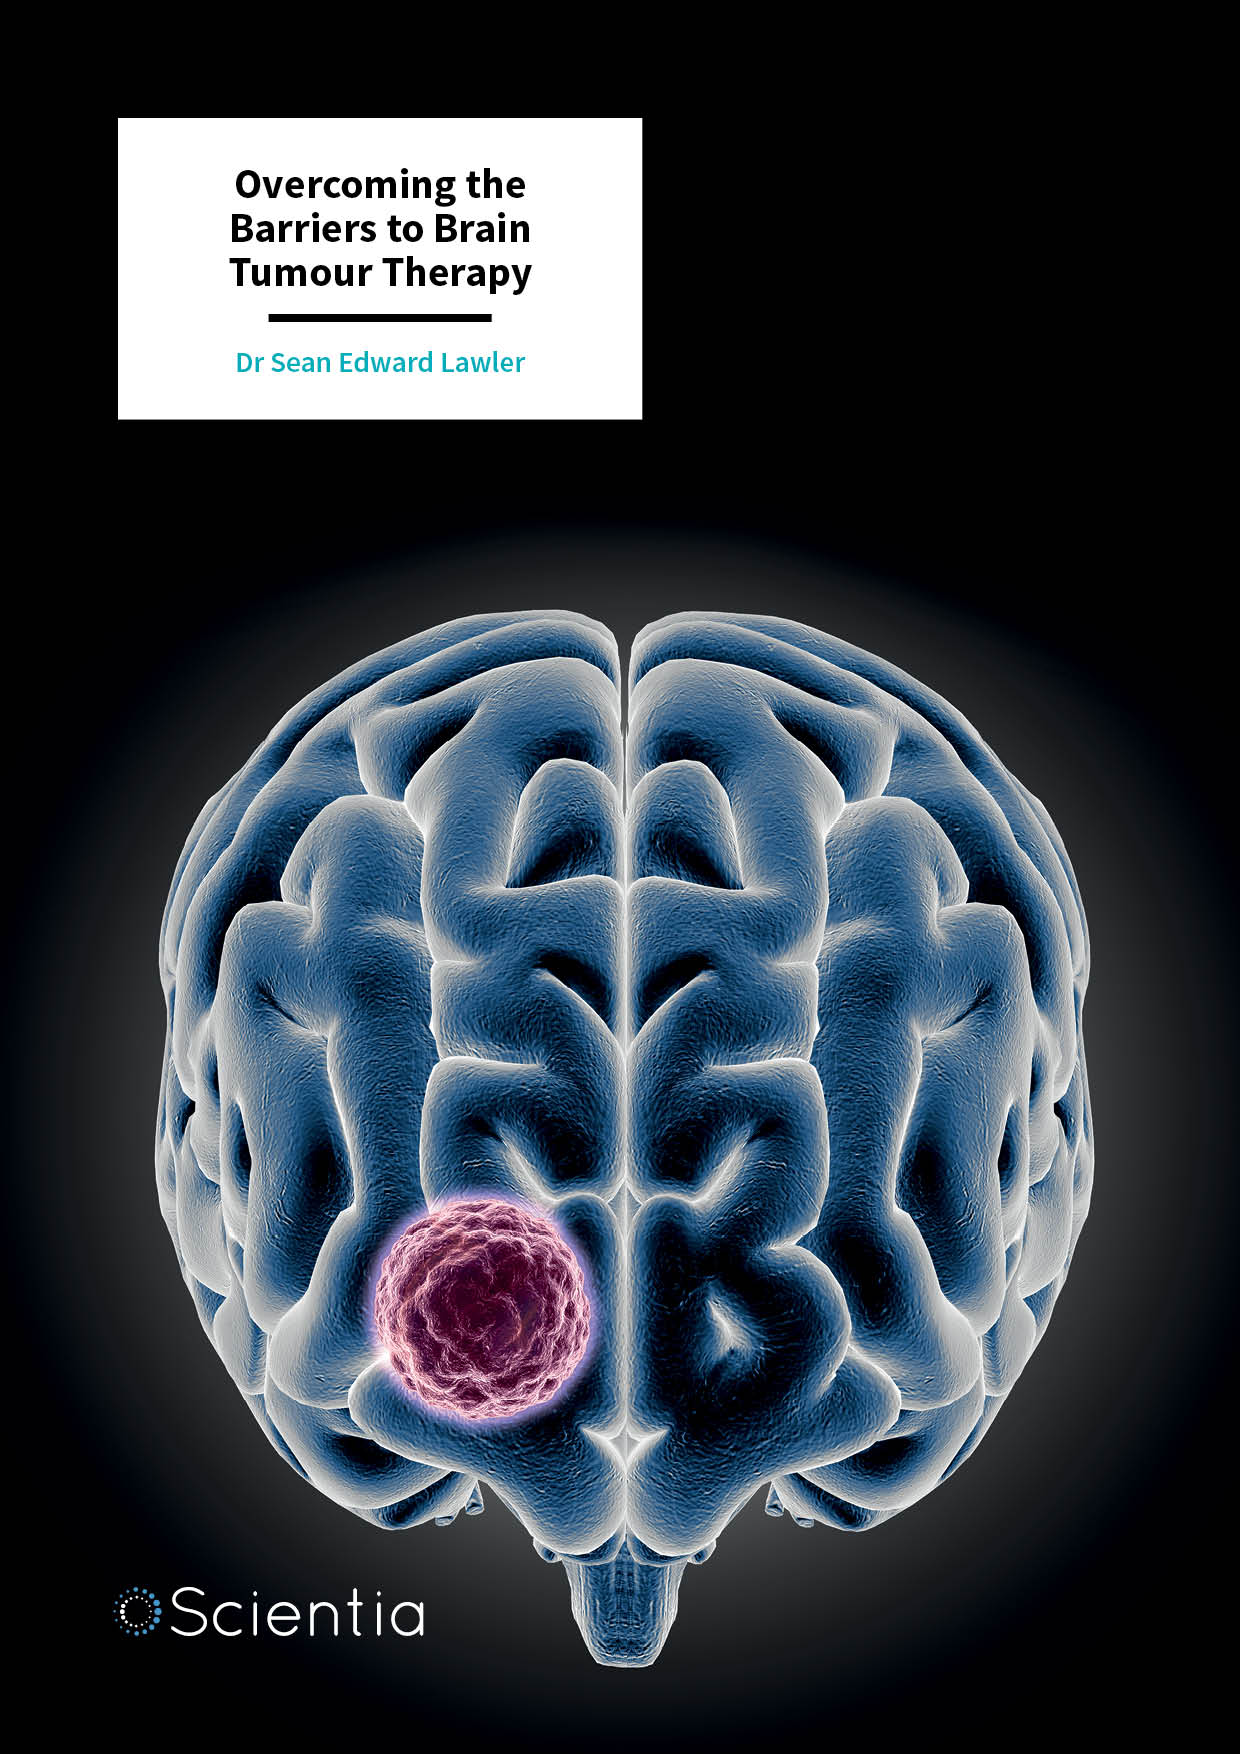 Dr Sean Lawler – Overcoming the Barriers to Brain Tumour Therapy